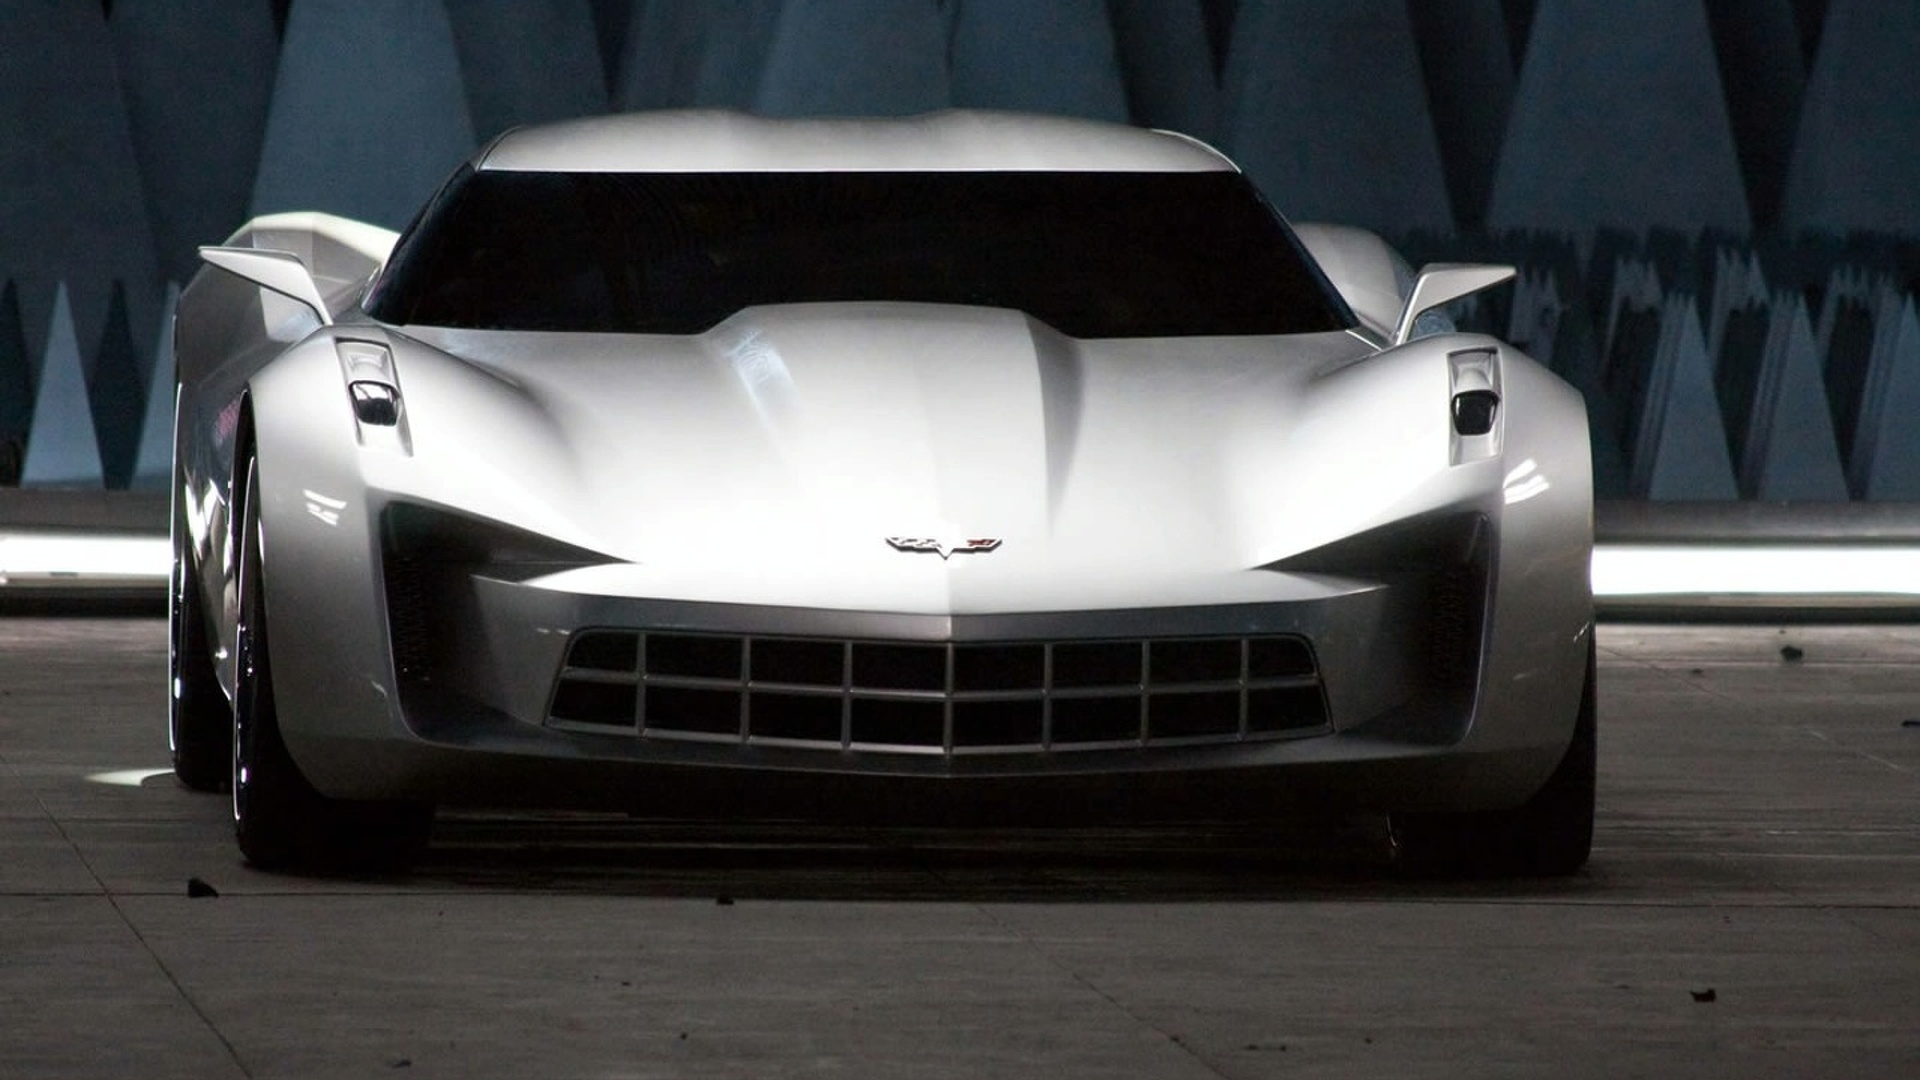 GM deny mid-engined Corvette; hybrid more likely